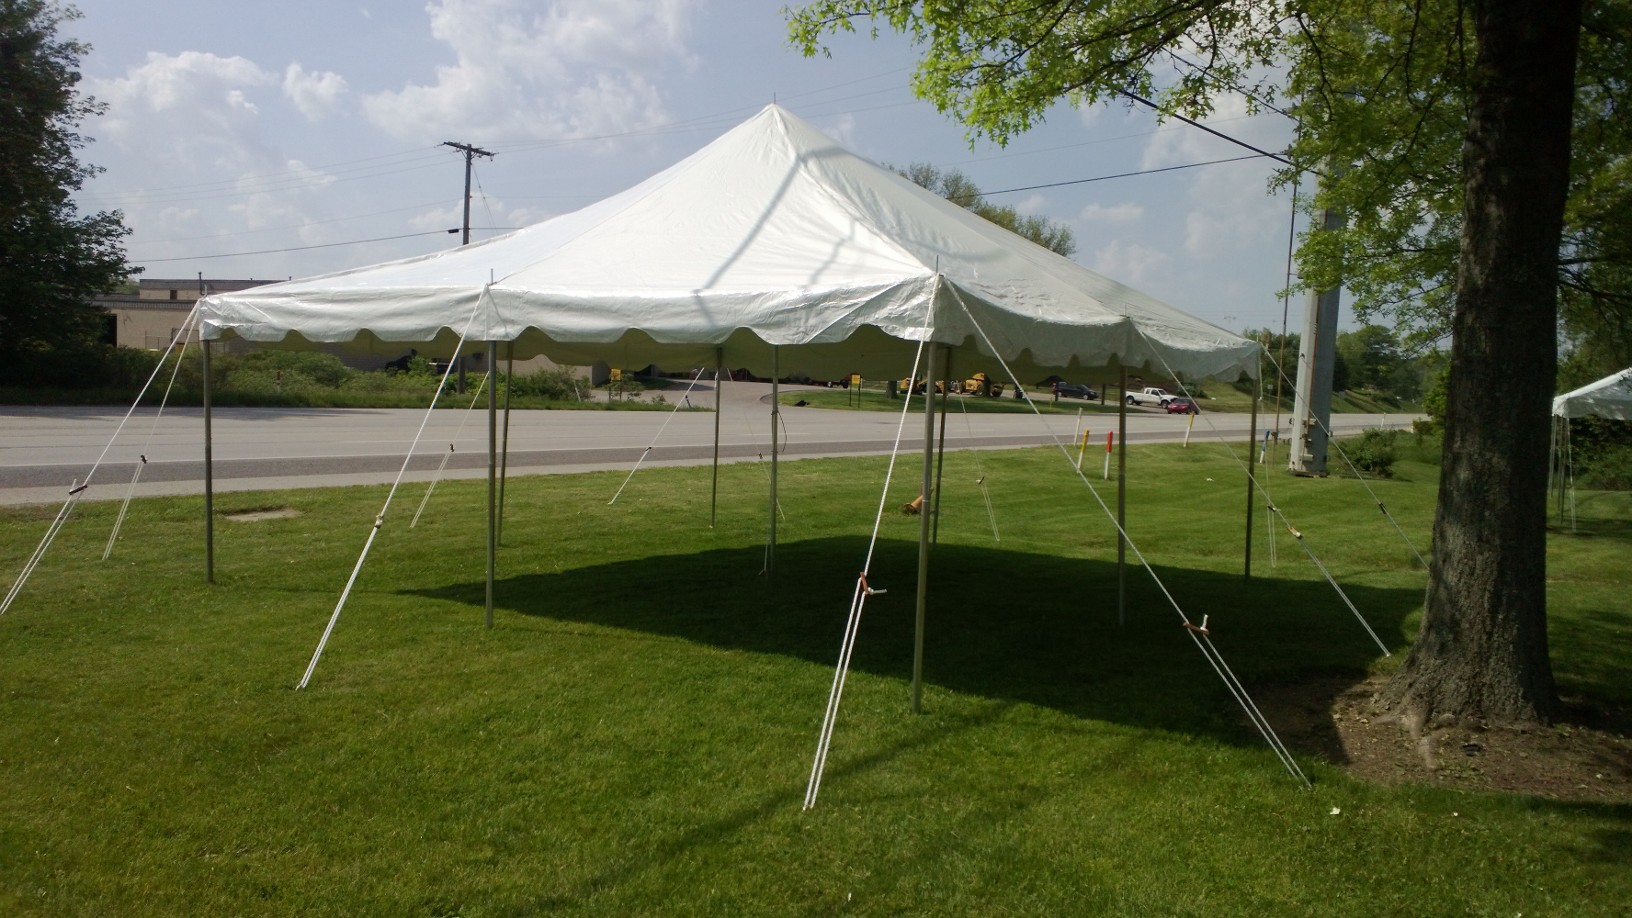 20 x 20 Pole Tent & 20 x 20 Pole Tent | General Rental Center